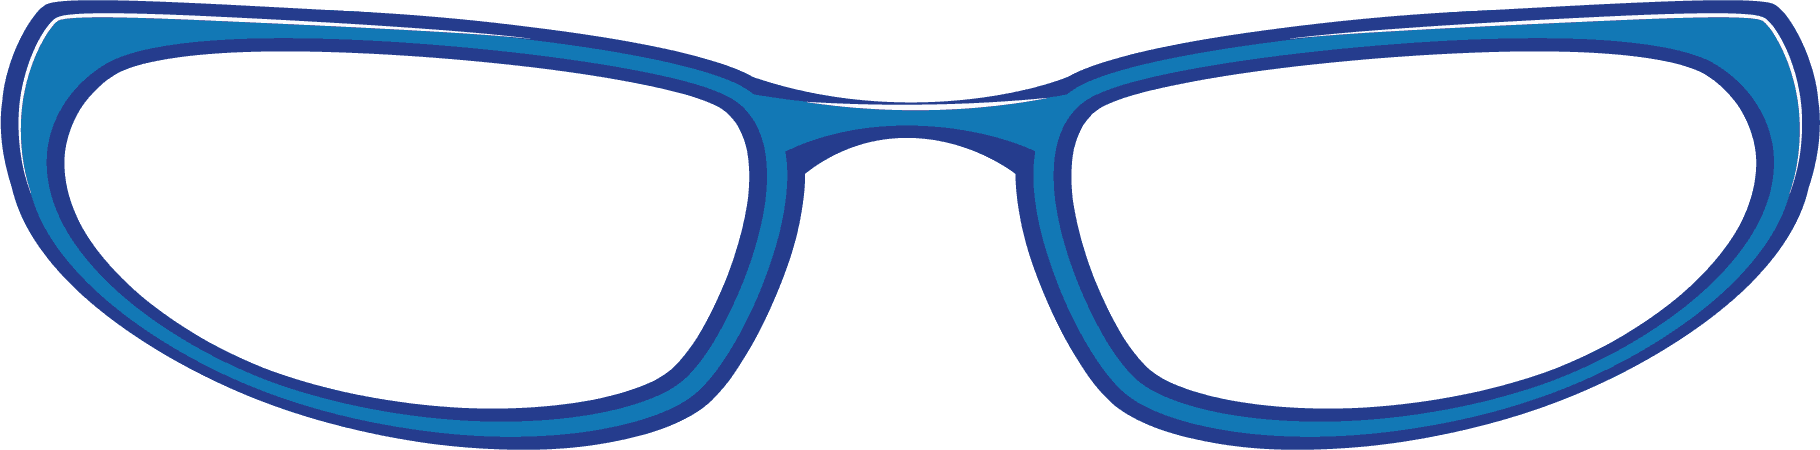 Hipster glasses clipart free images 2